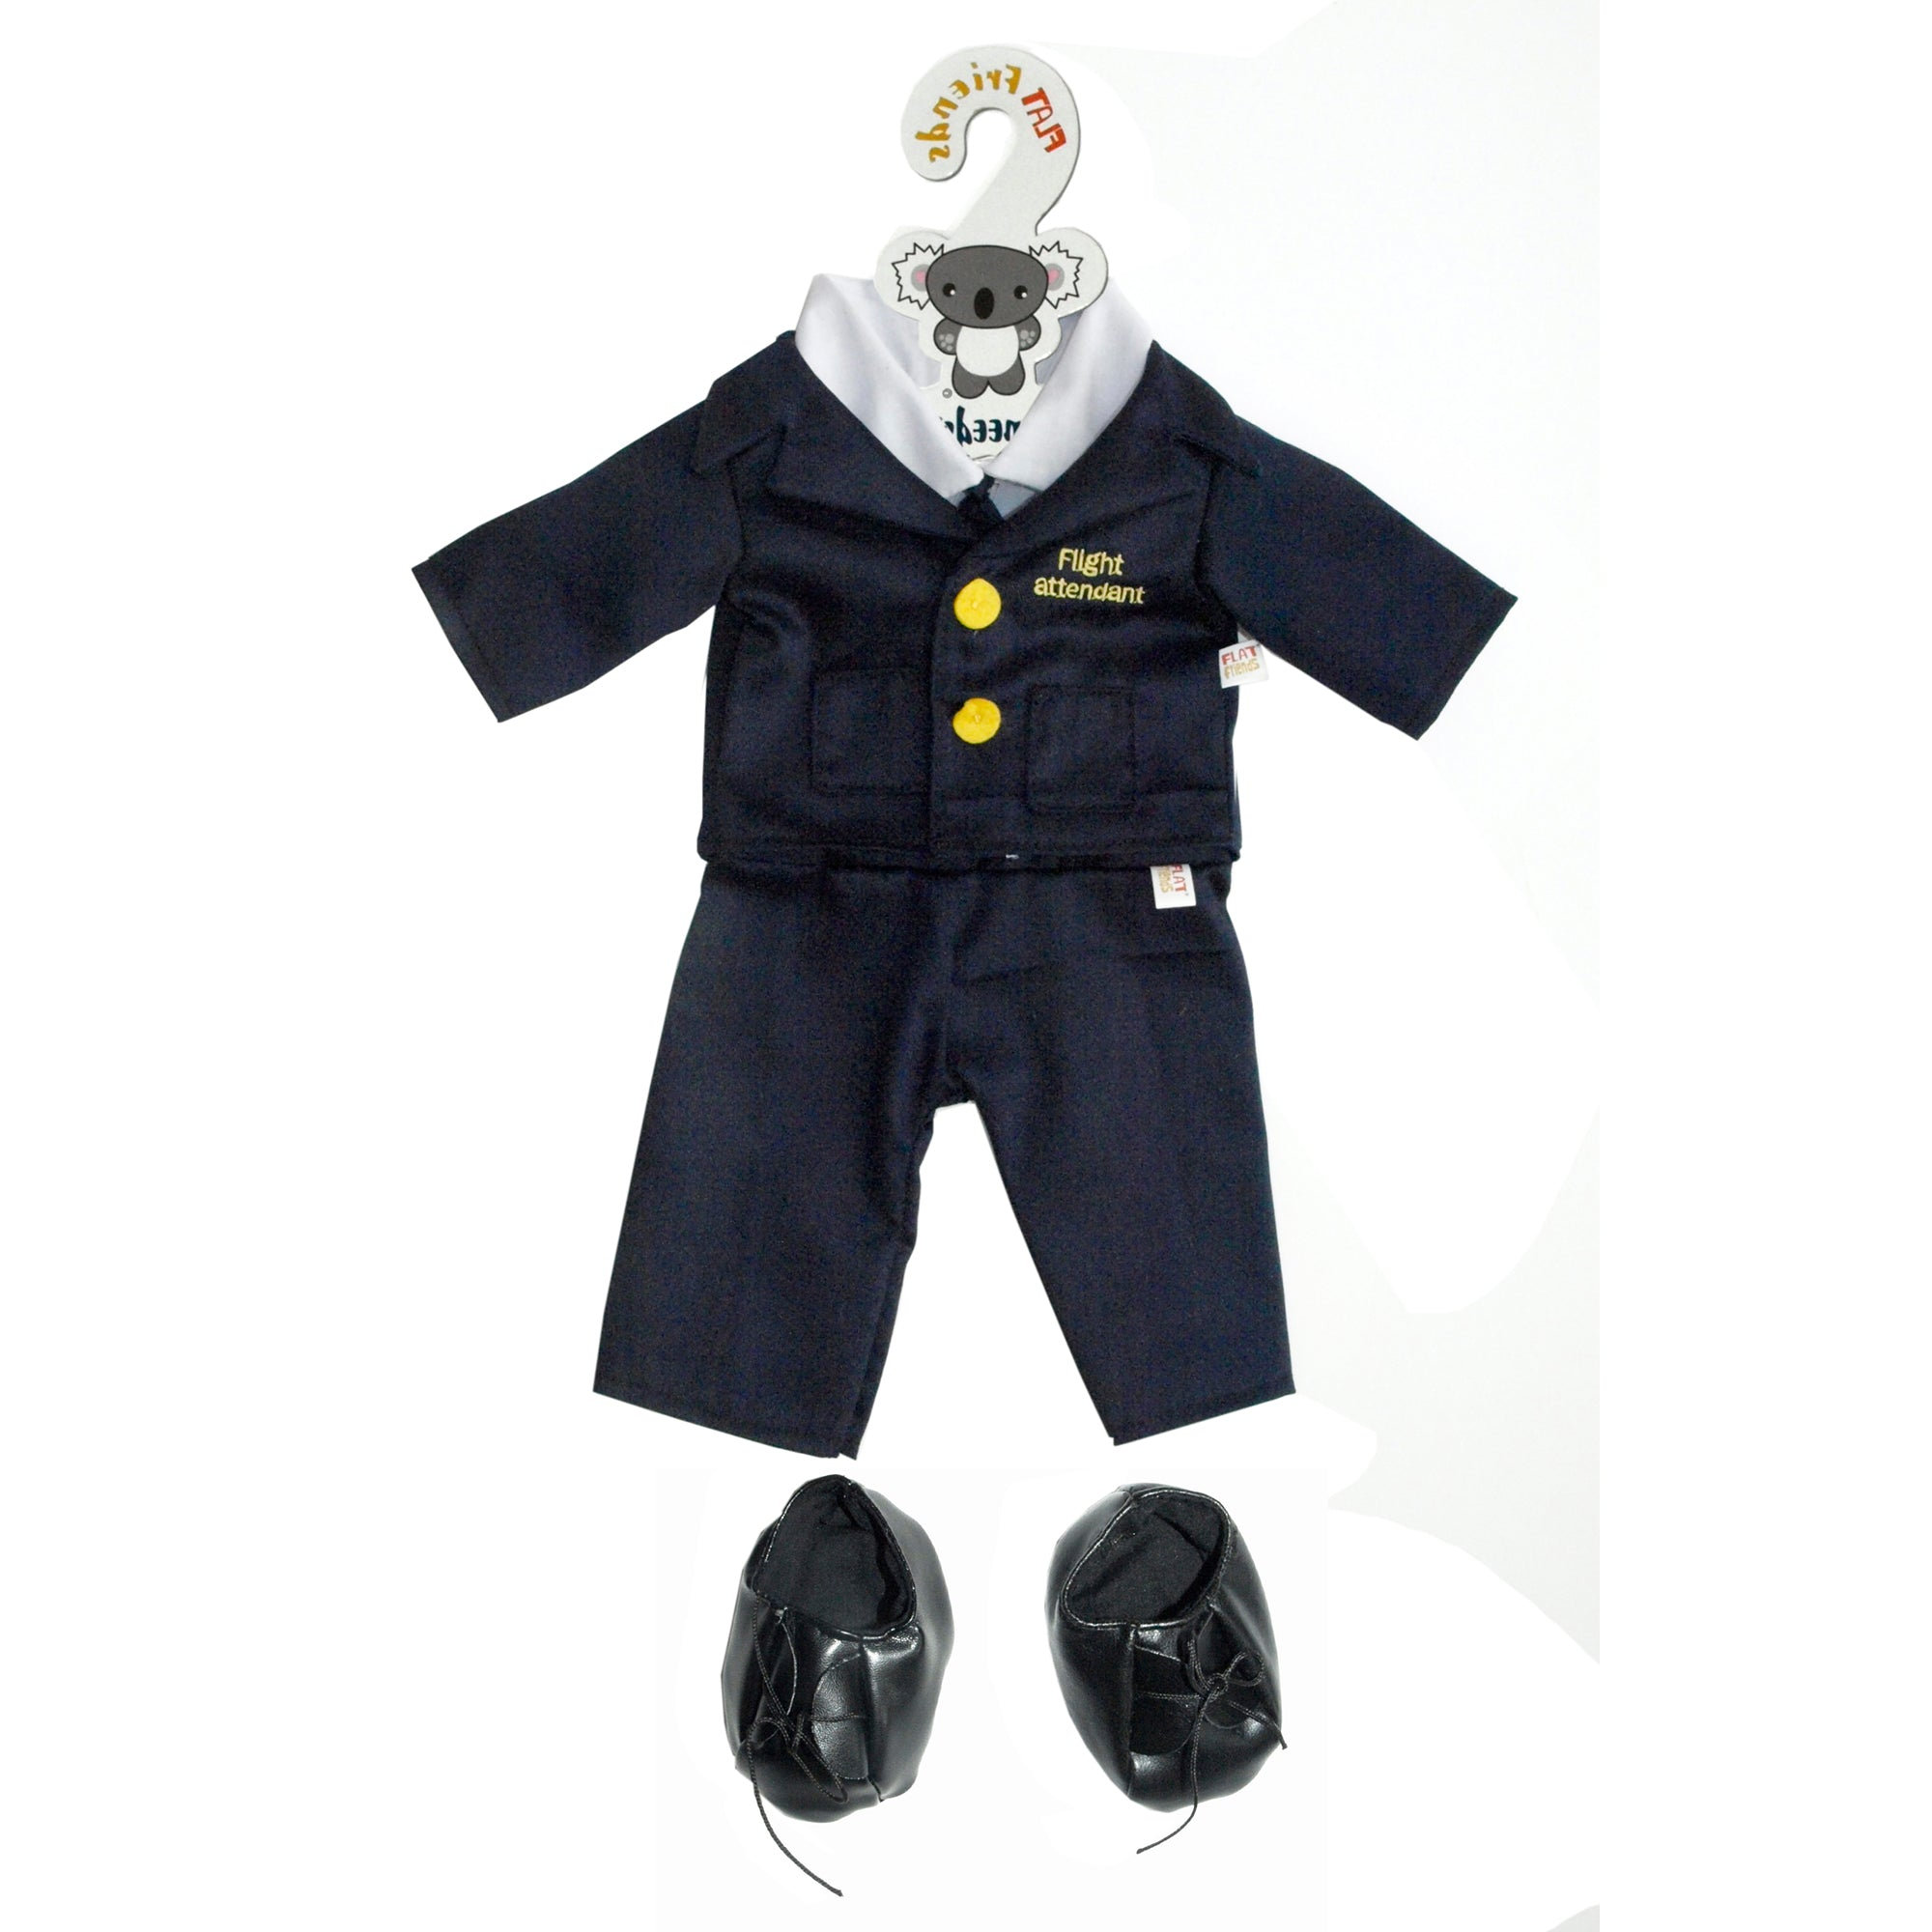 Flight attendant uniform, navy pants & jacket, 46cm HP